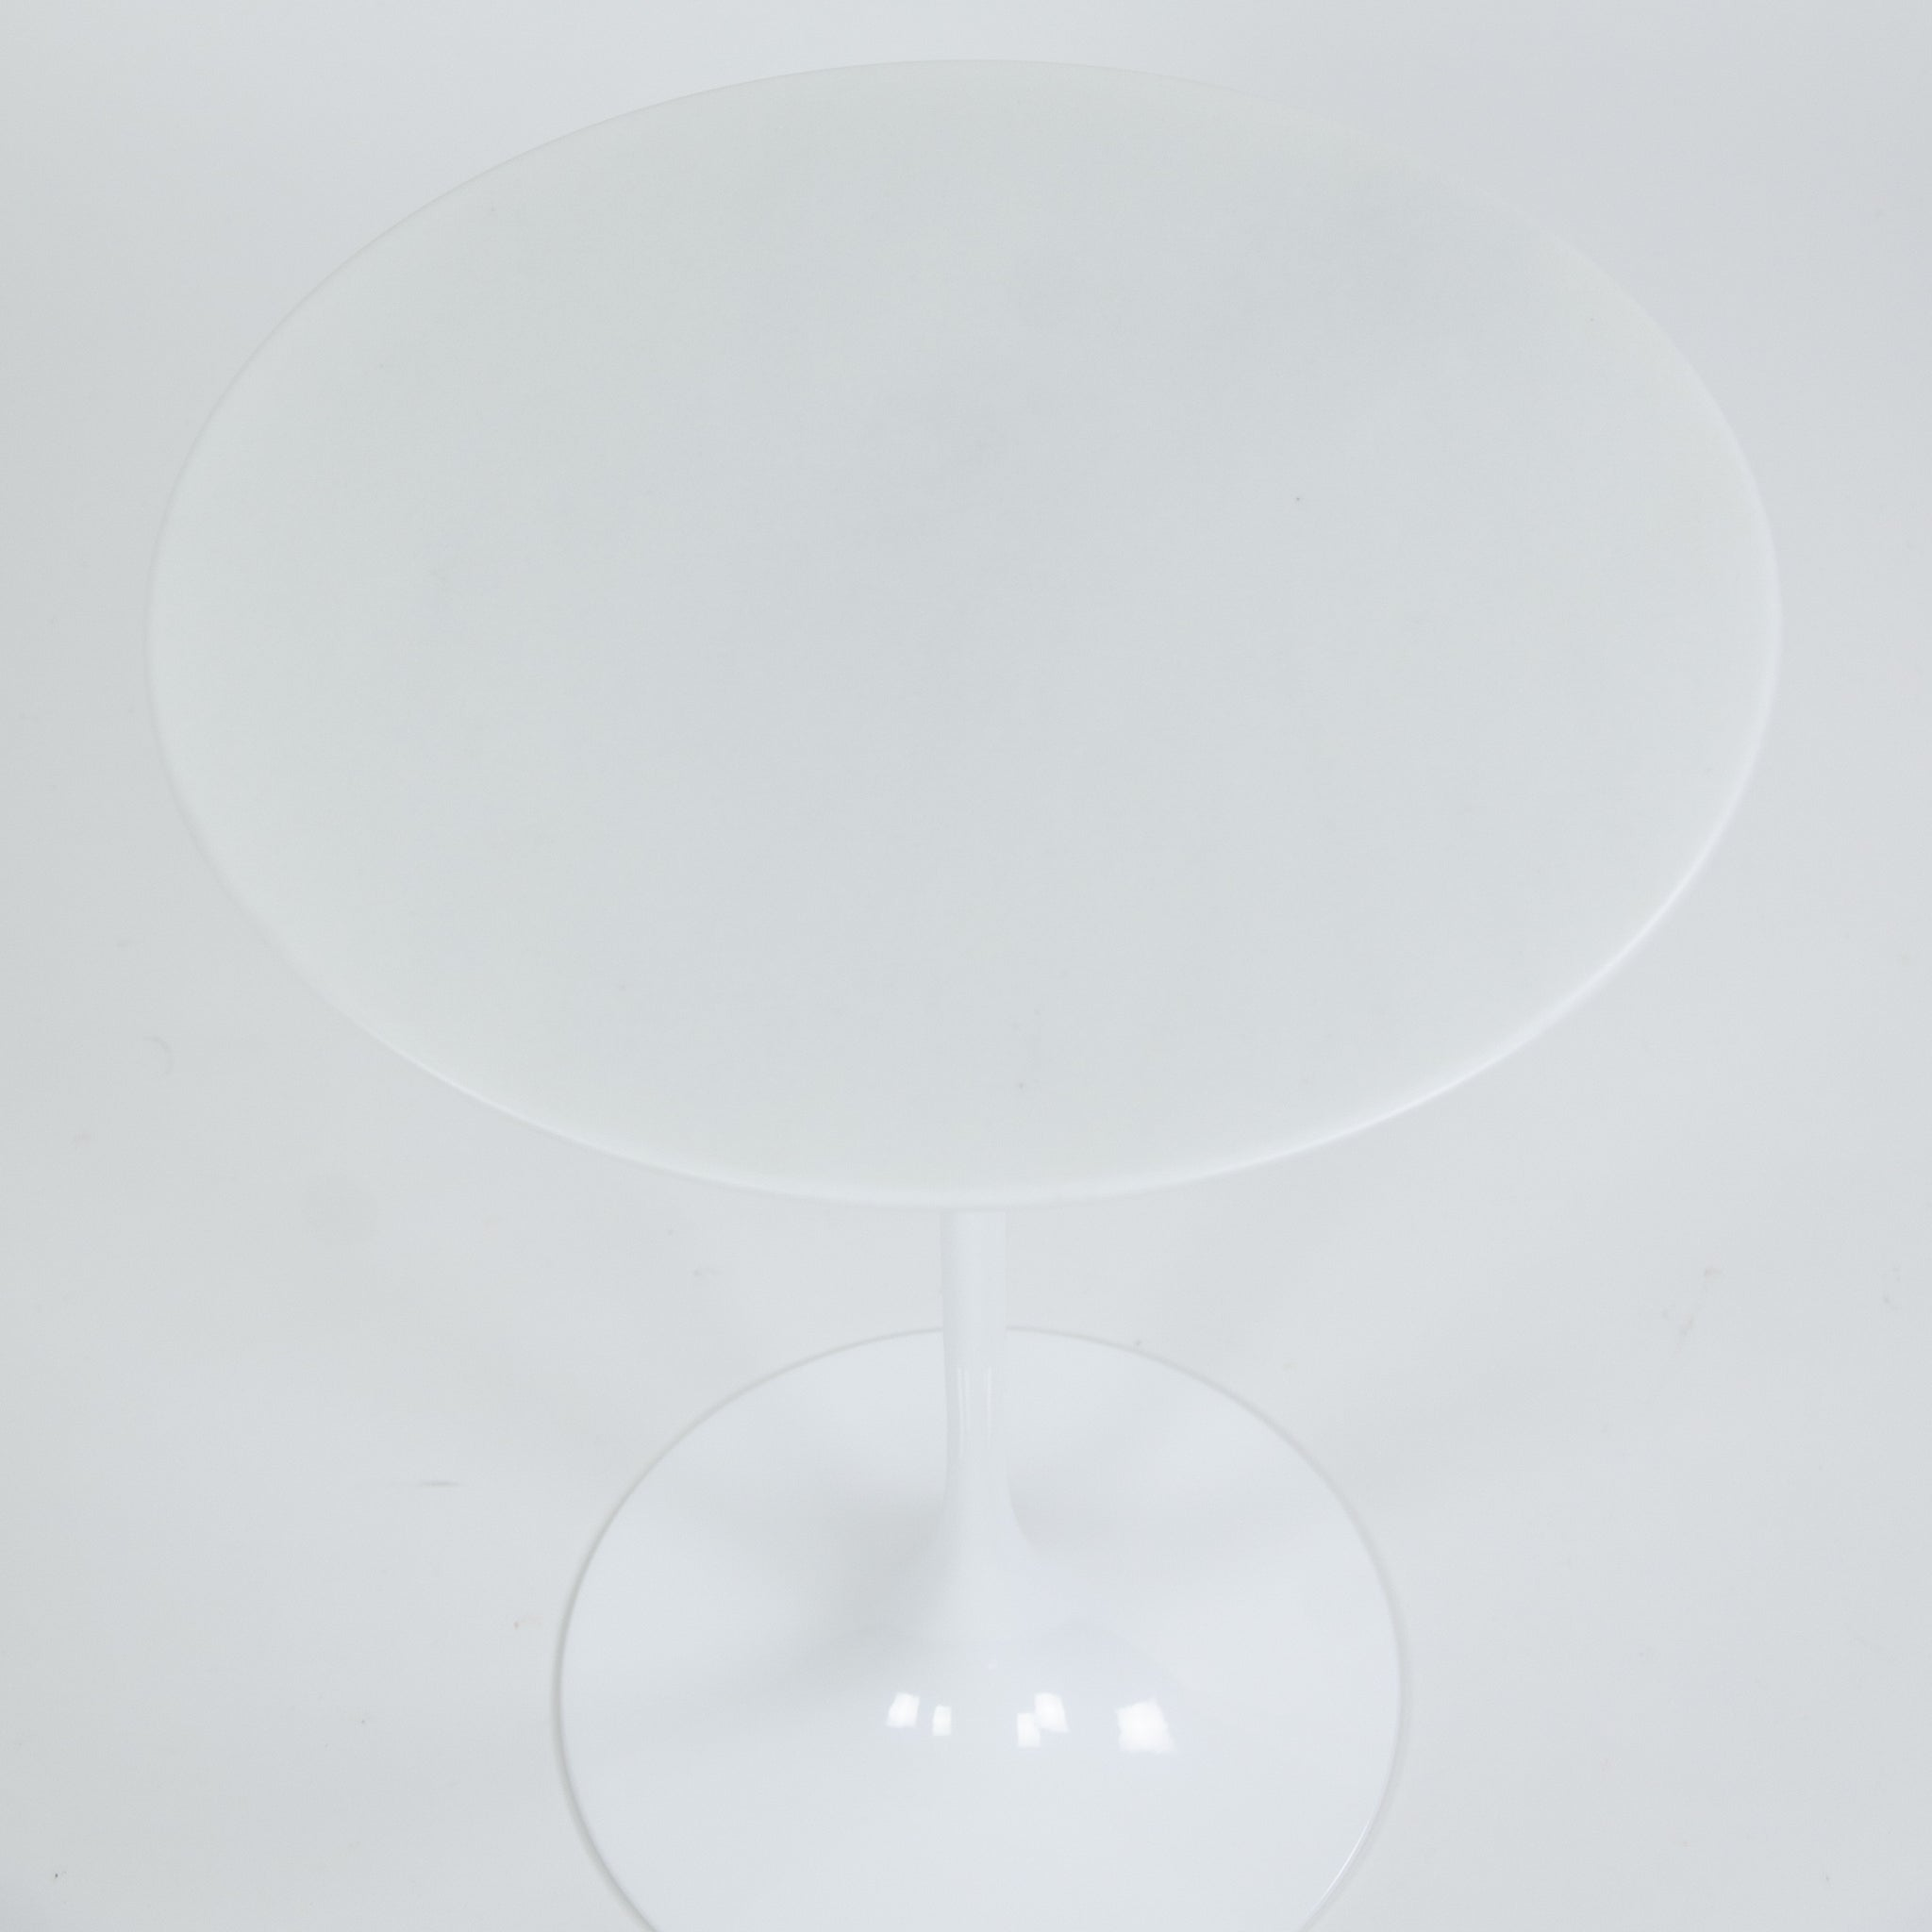 SOLD New Eero Saarinen For Knoll 16 Inch Tulip Side Table Matte White Marble Top 2x